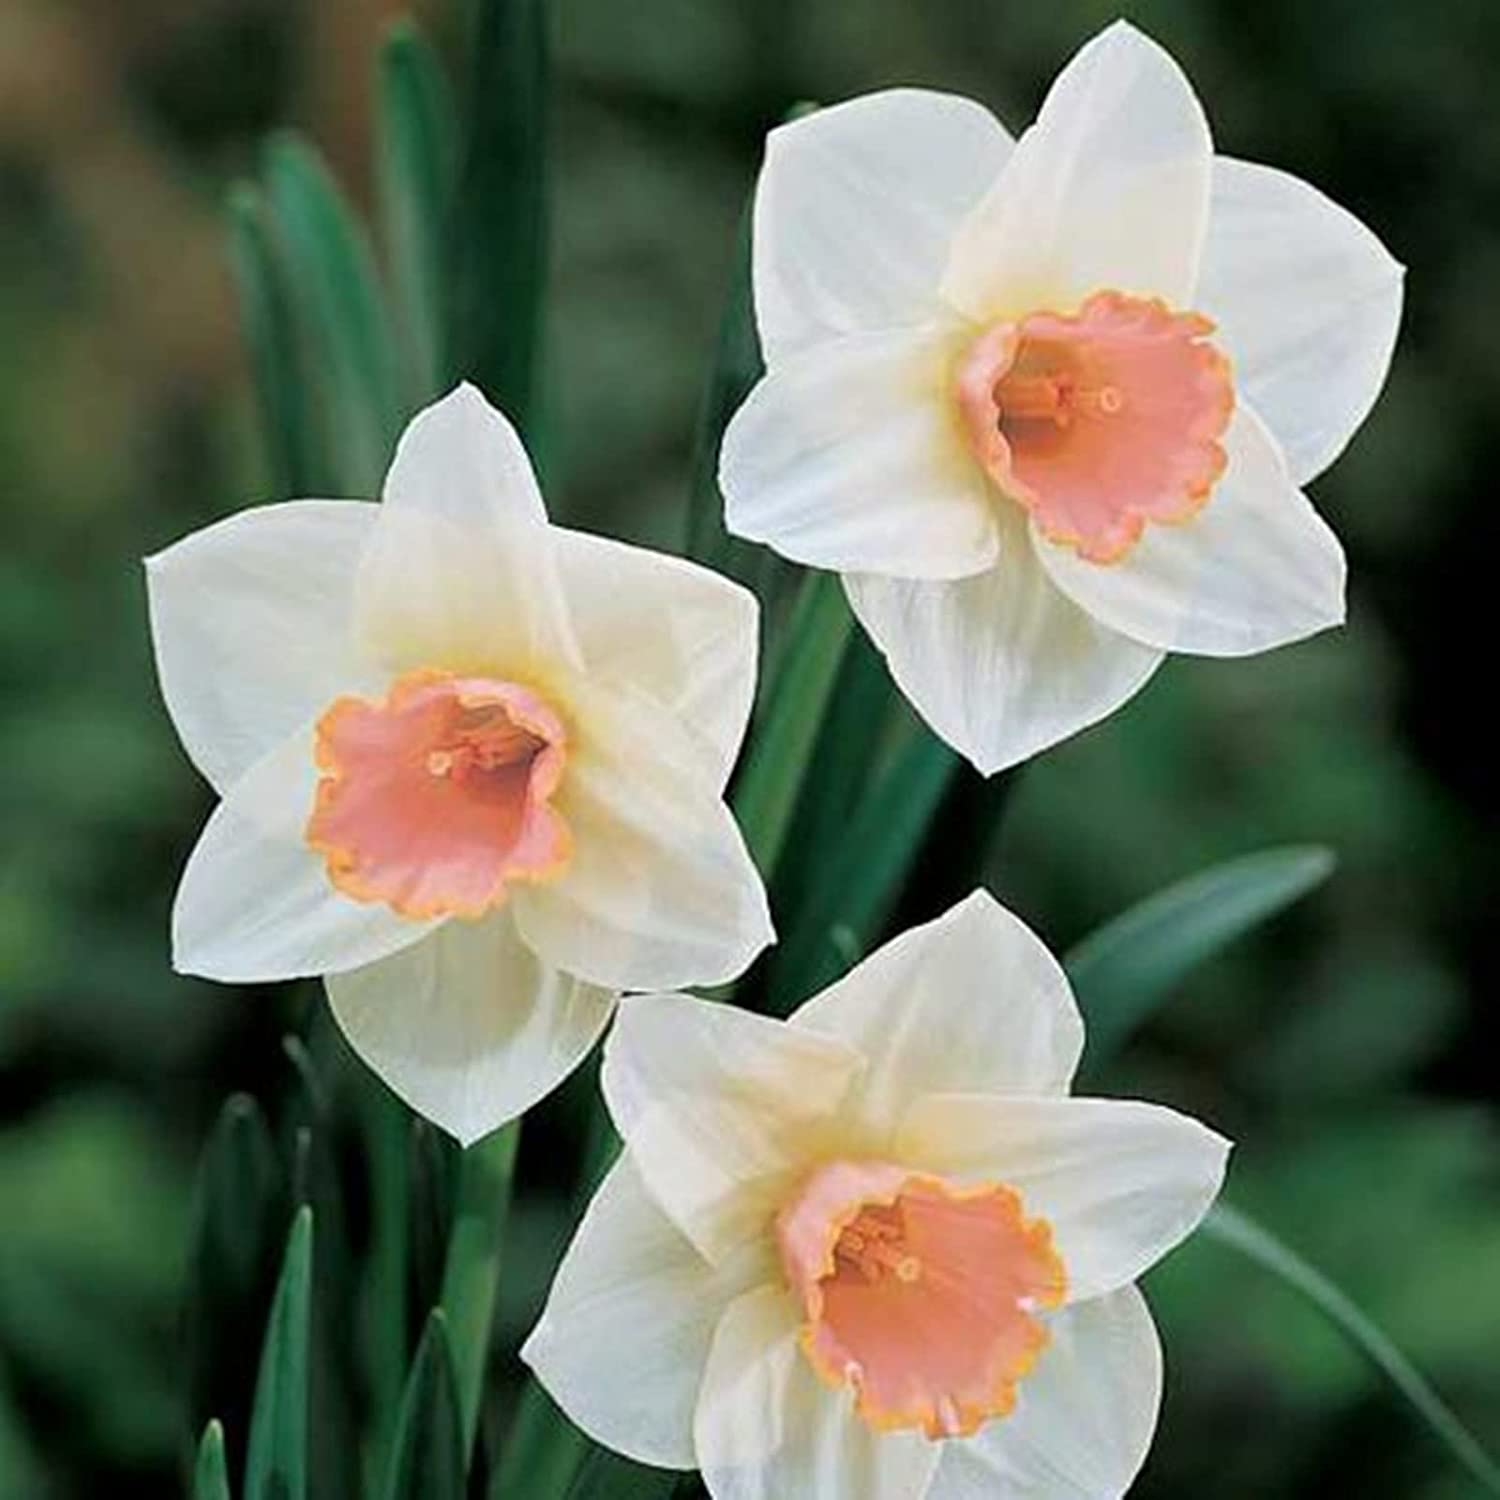 Attractive Flowers Surprise Gift 55% OFF NEW before selling Daffodil Bulbs T One The top of